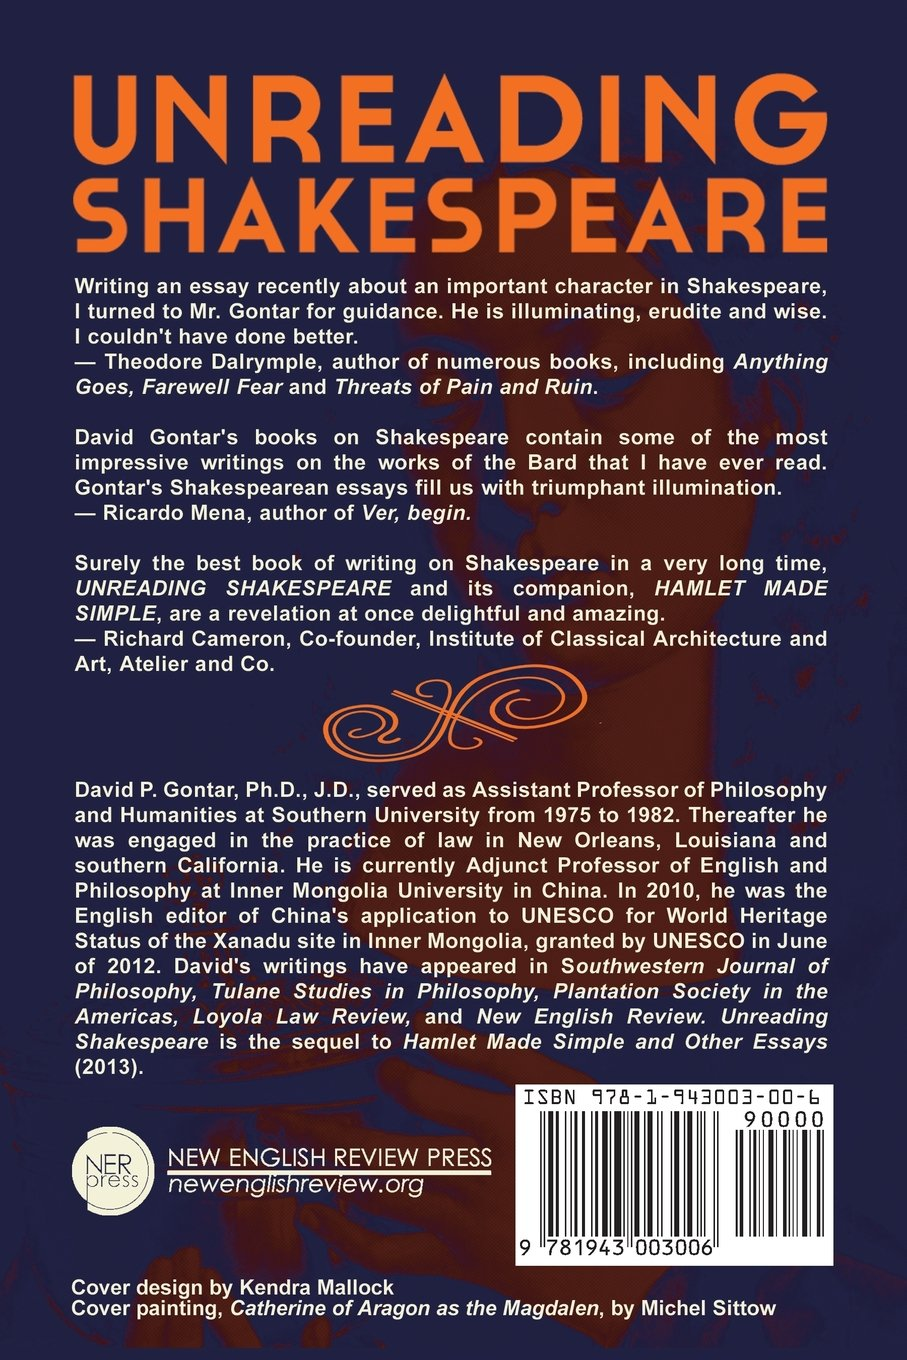 com unreading shakespeare david p gontar com unreading shakespeare 9781943003006 david p gontar books